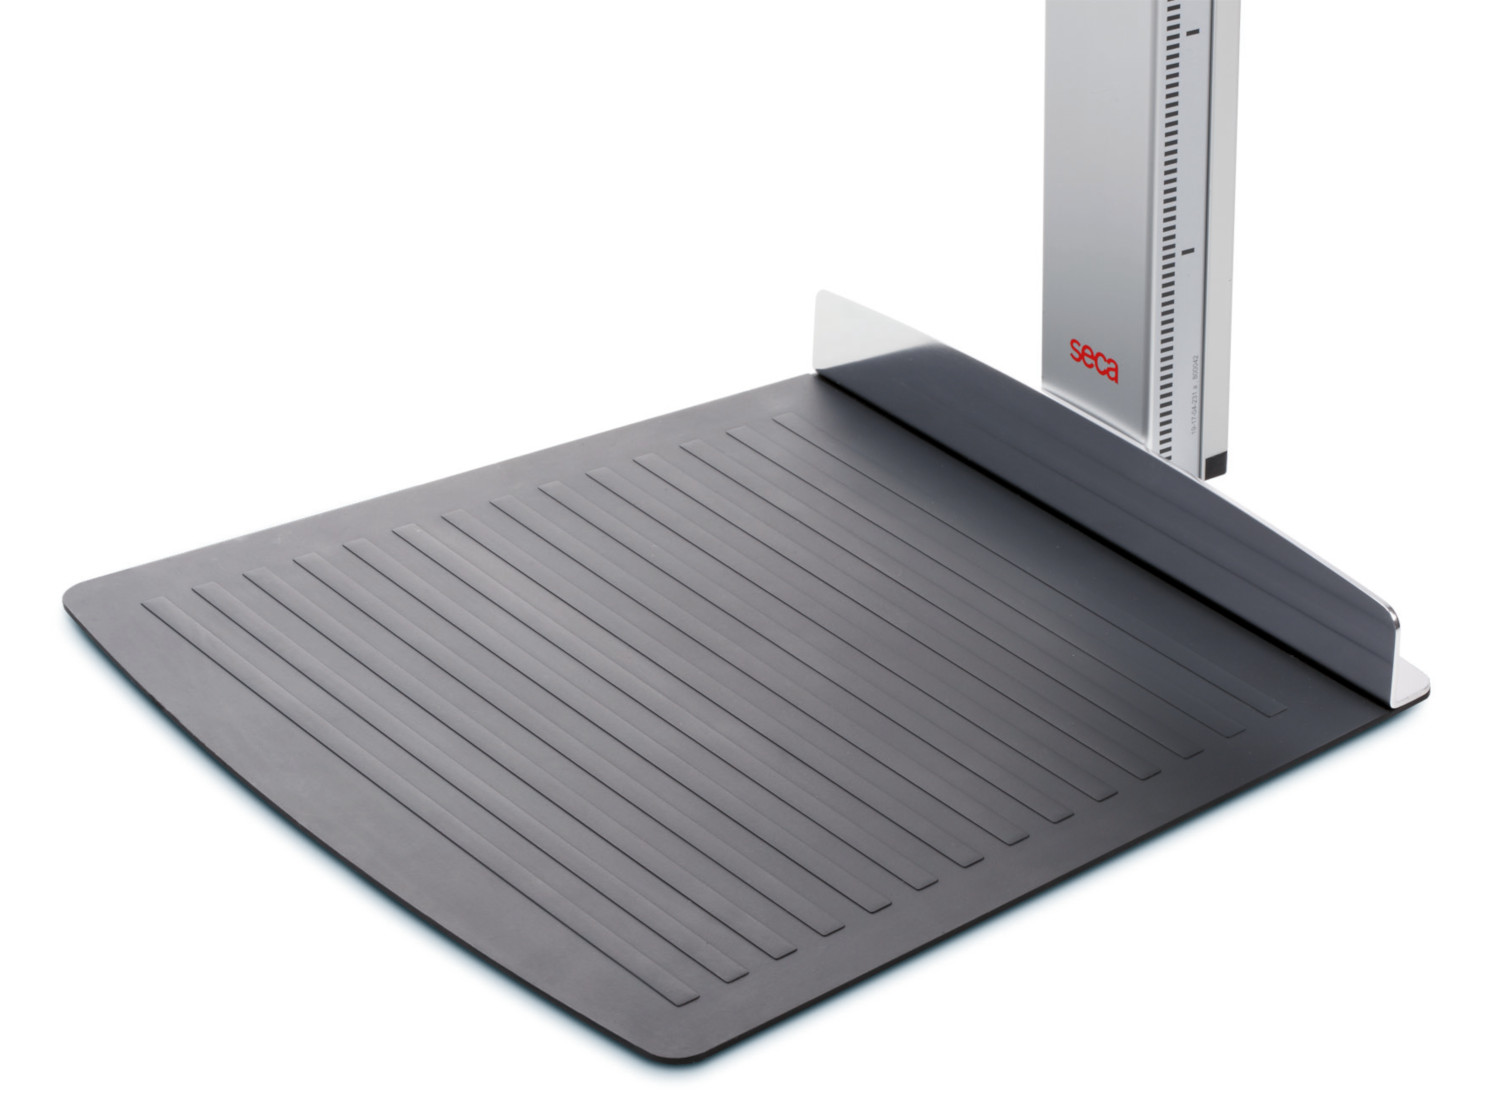 SECA MODEL 264 | weighingscales.com